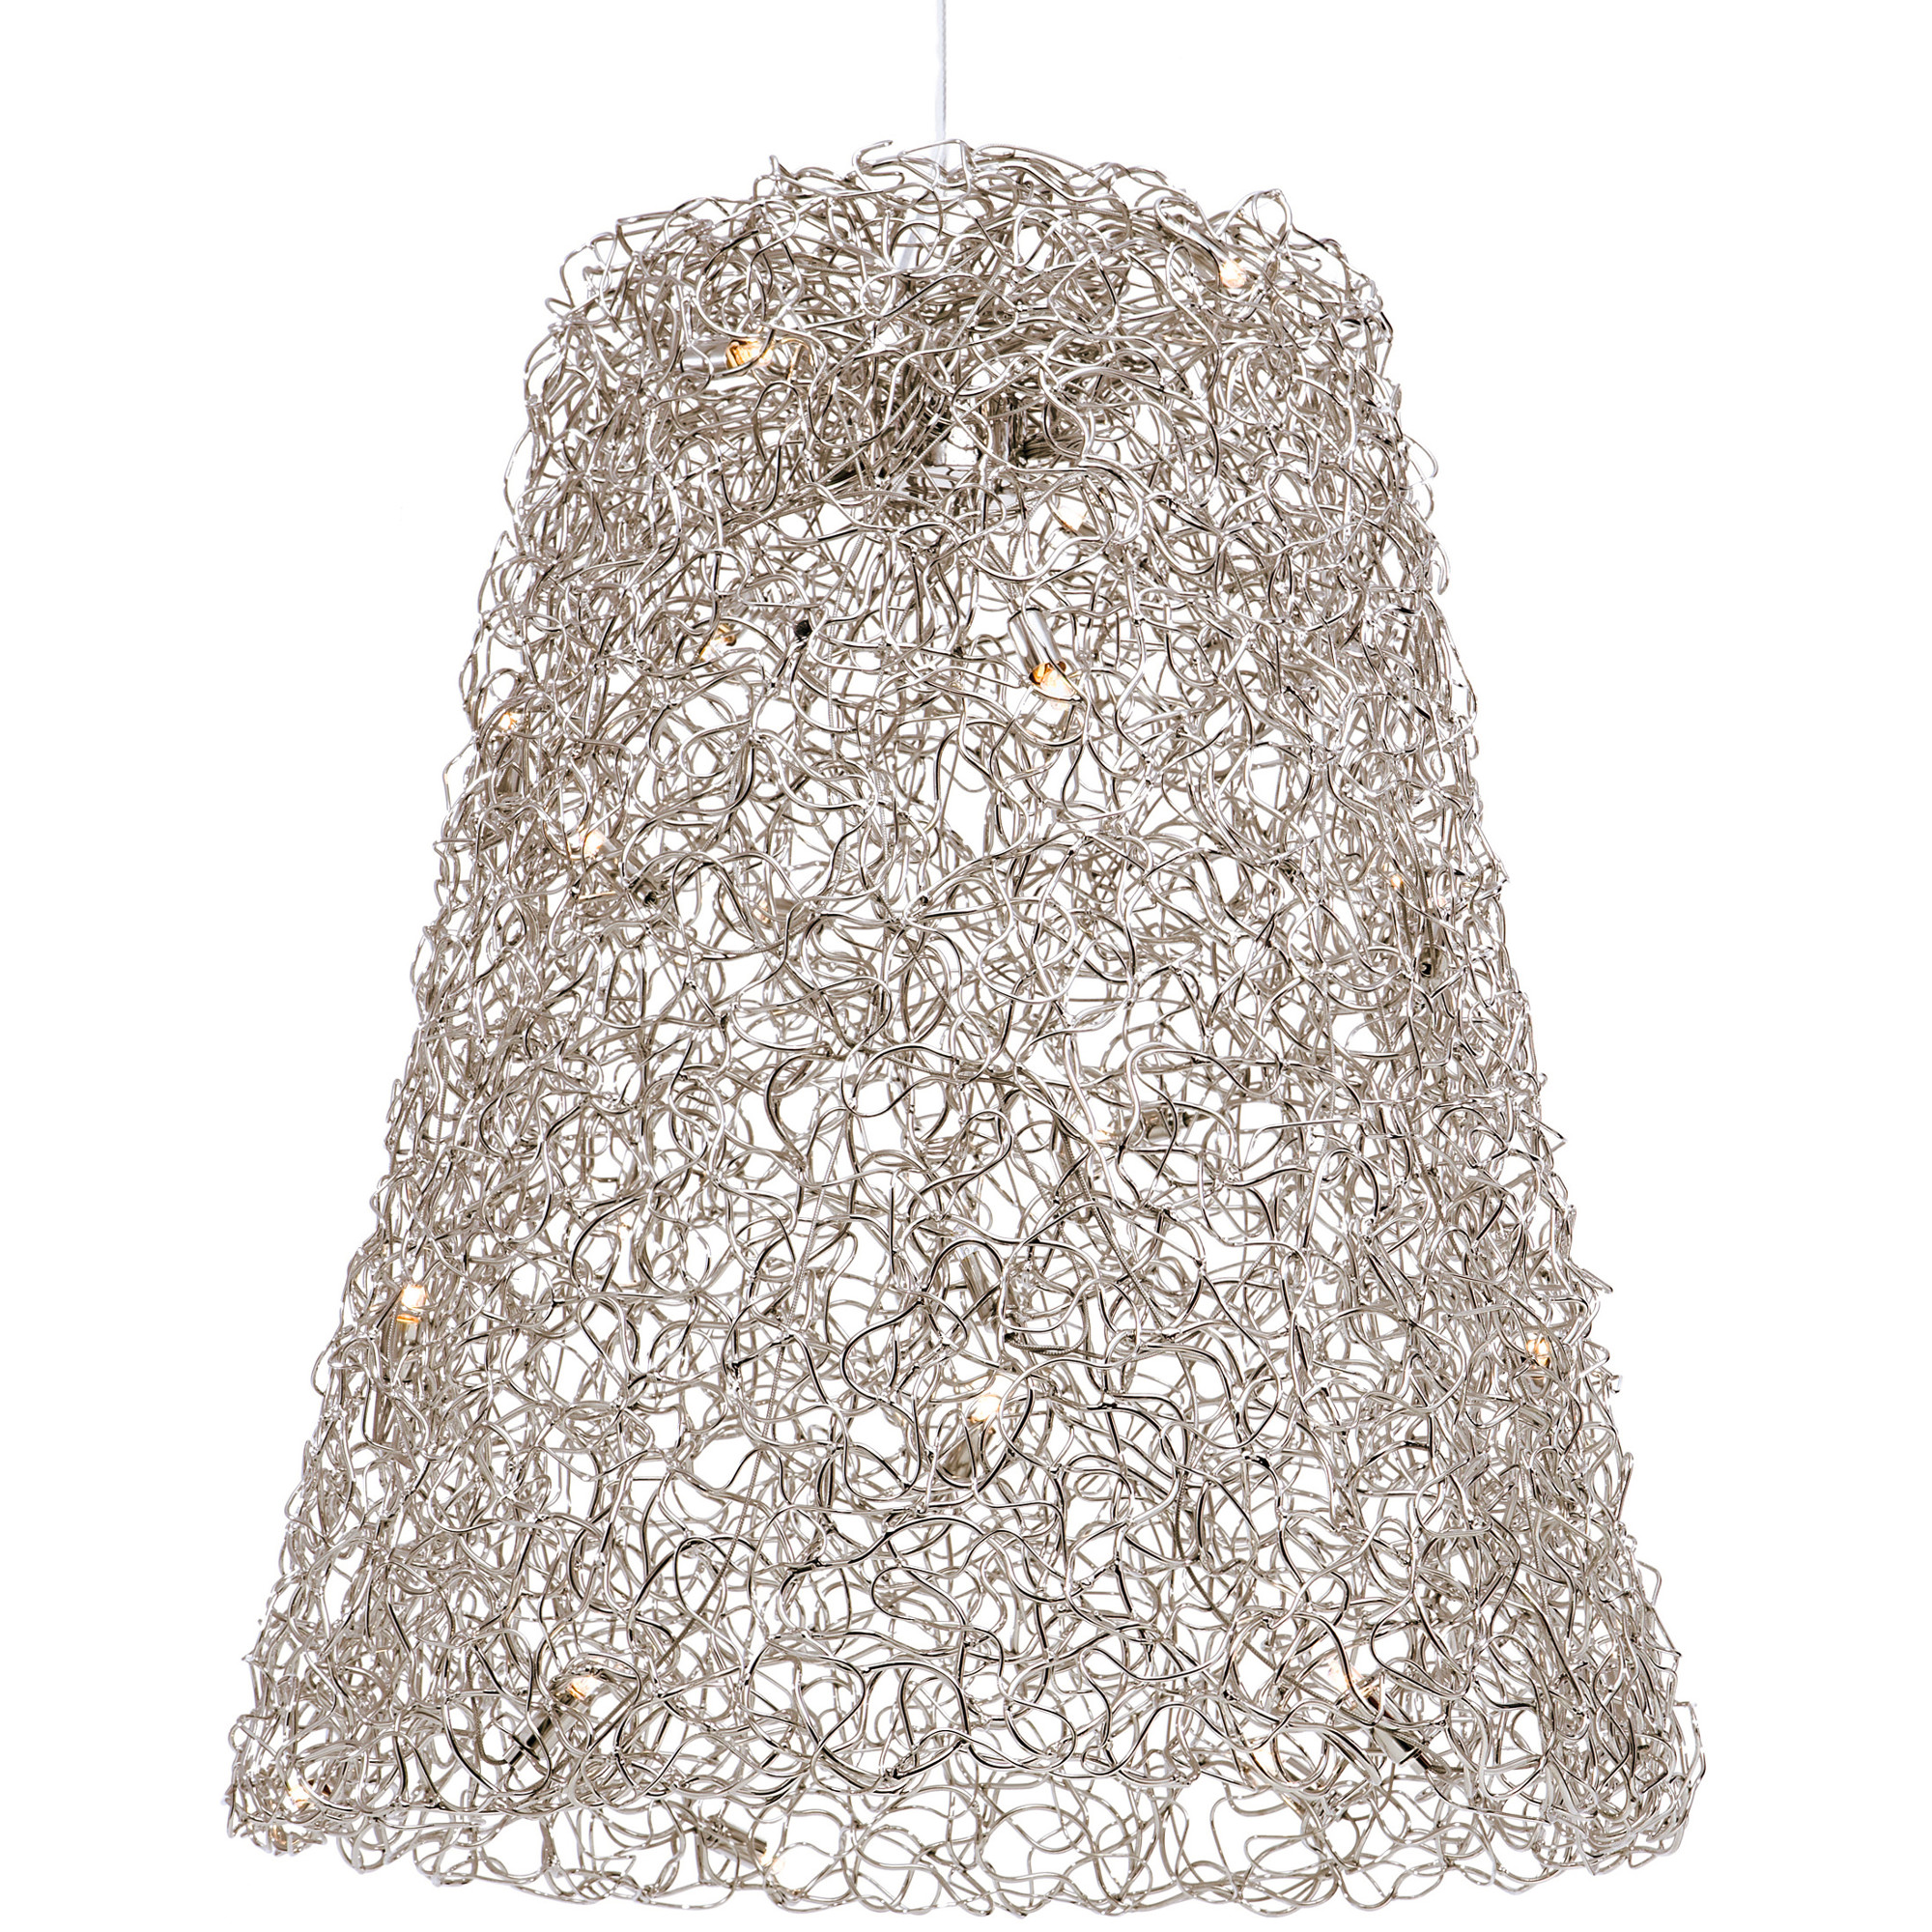 Hanging Lamp Shade: Crystal Waters Hanging Lamp Shade by Brand Van Egmond | CWSHADE60NHU,Lighting